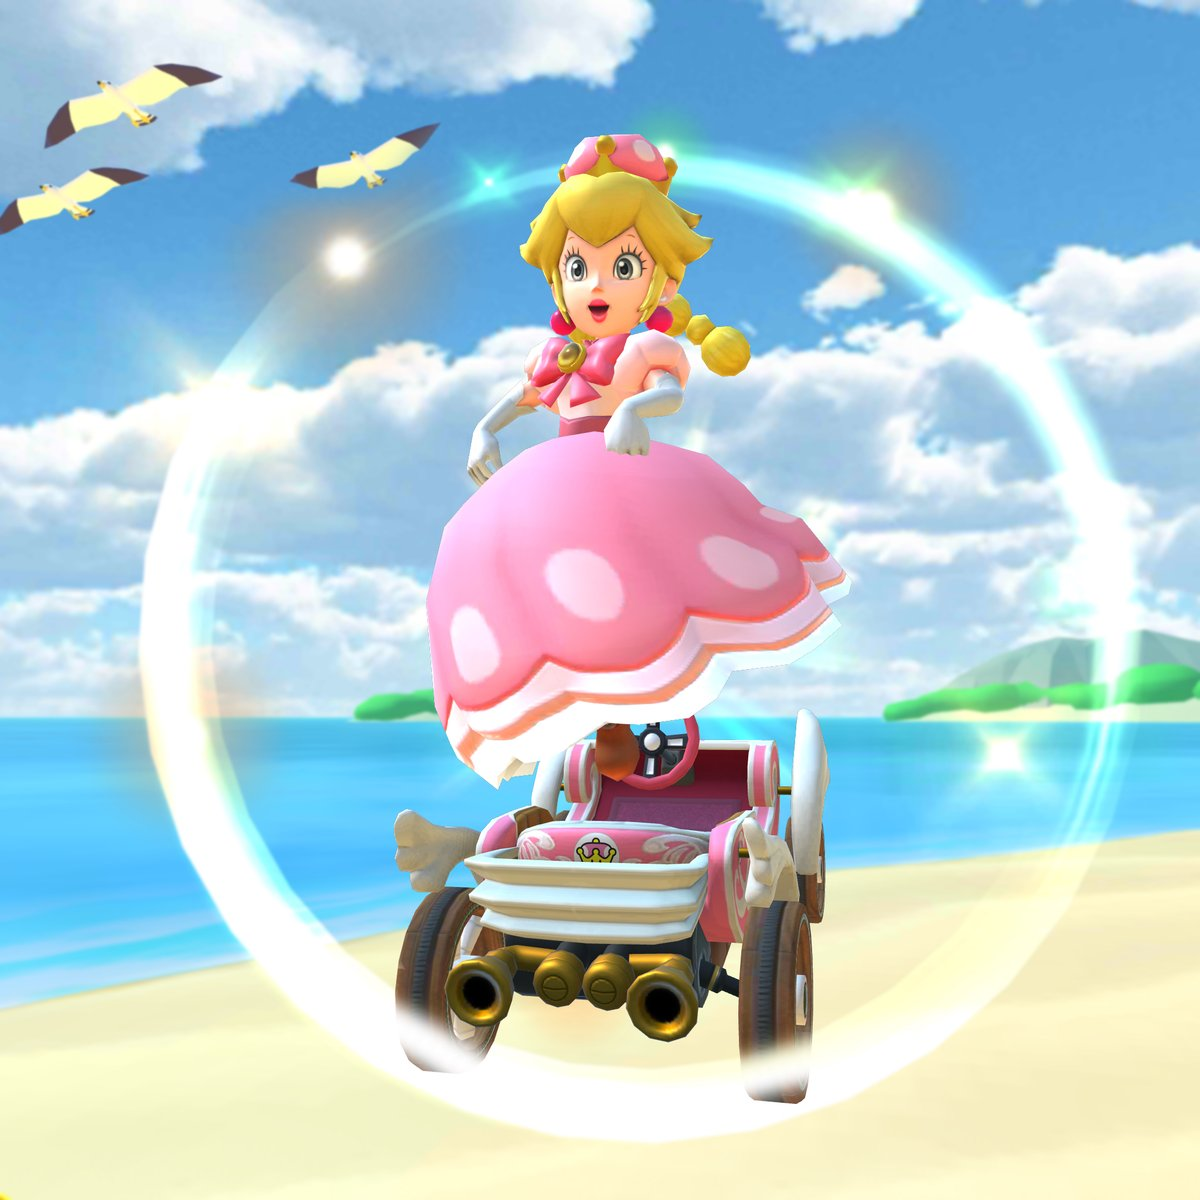 Peachette Is In Mario Kart Tour First Time Playable In The Series Nintendo Everything